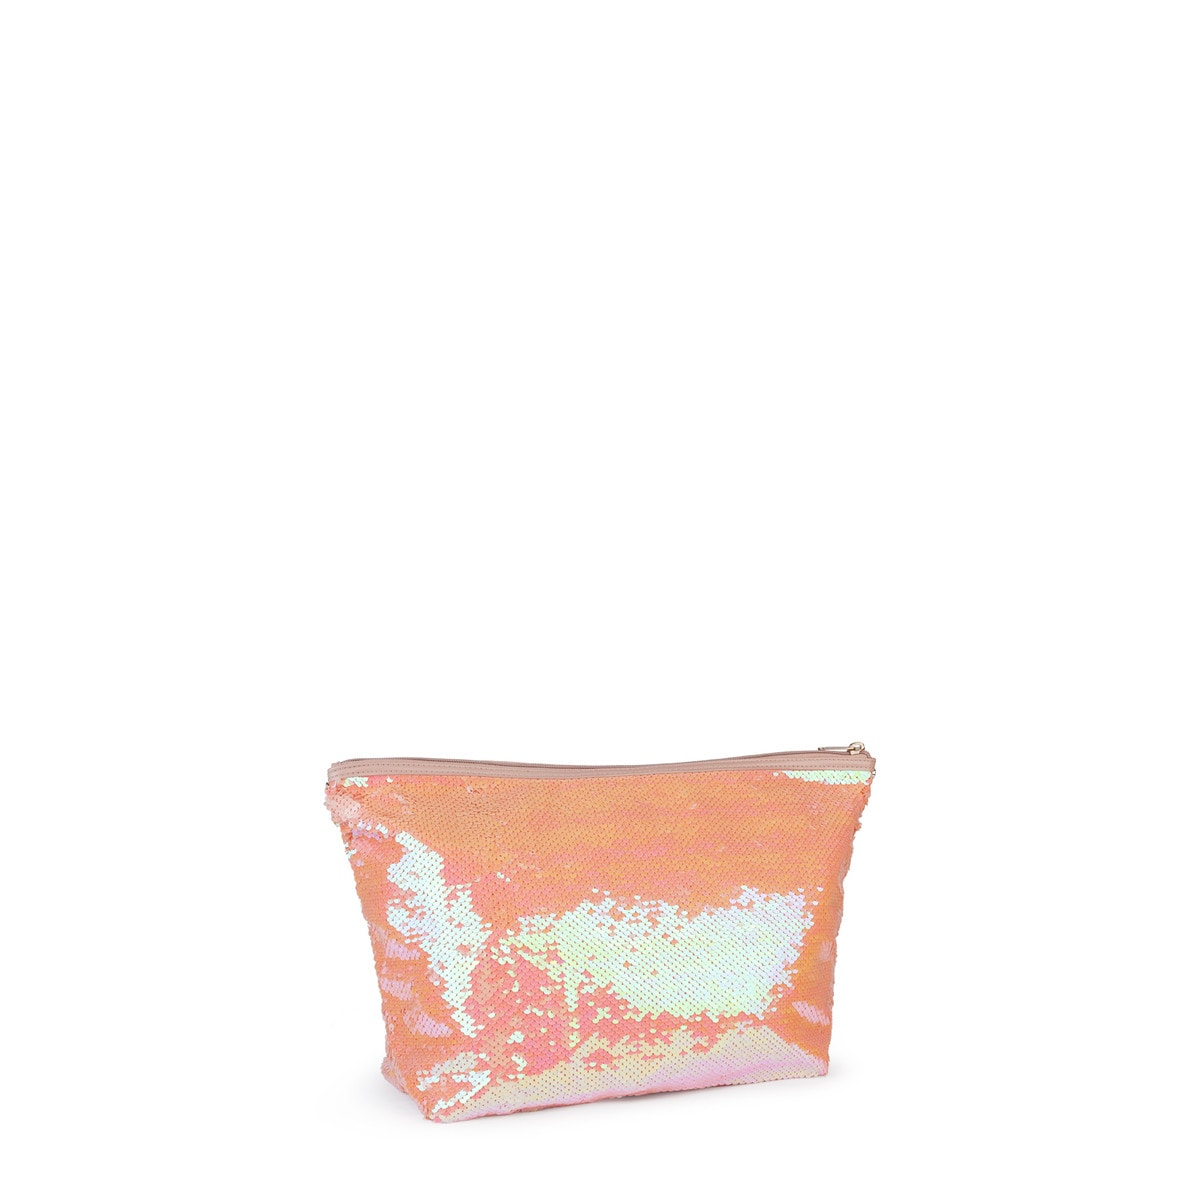 Small pink Kaos Shock Sequins Handbag